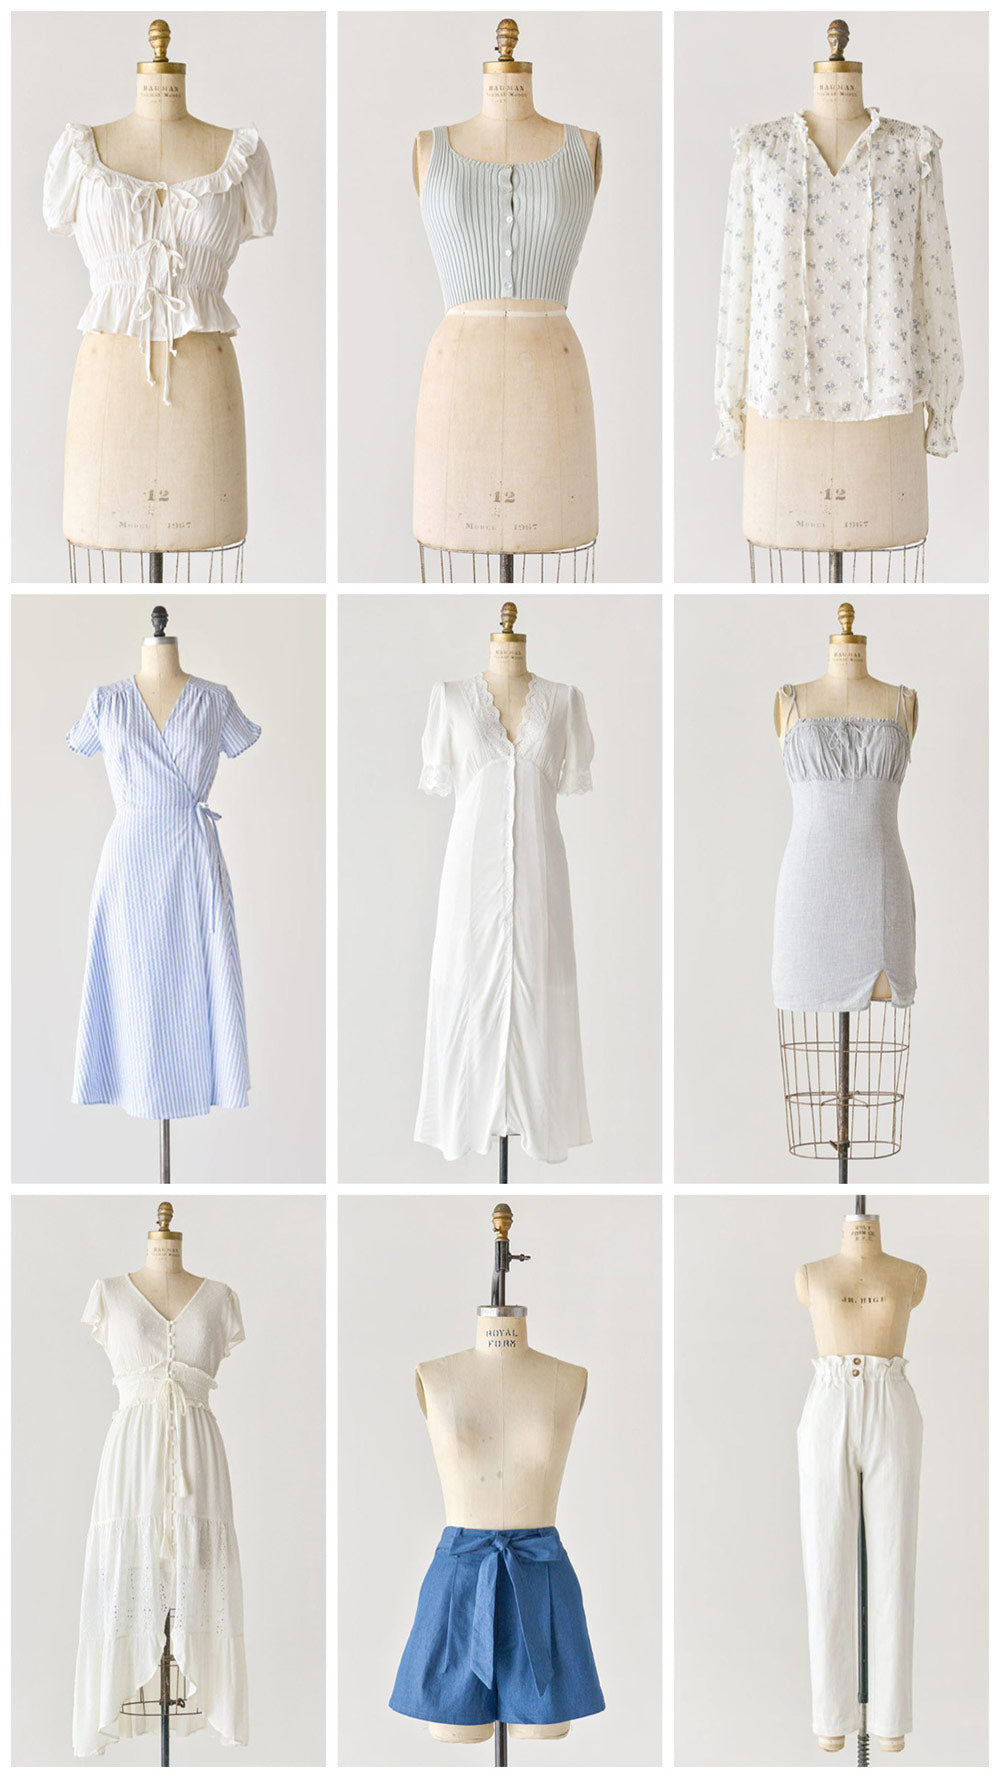 Shop timeless and feminine blue and white clothing for summer at Adored Vintage